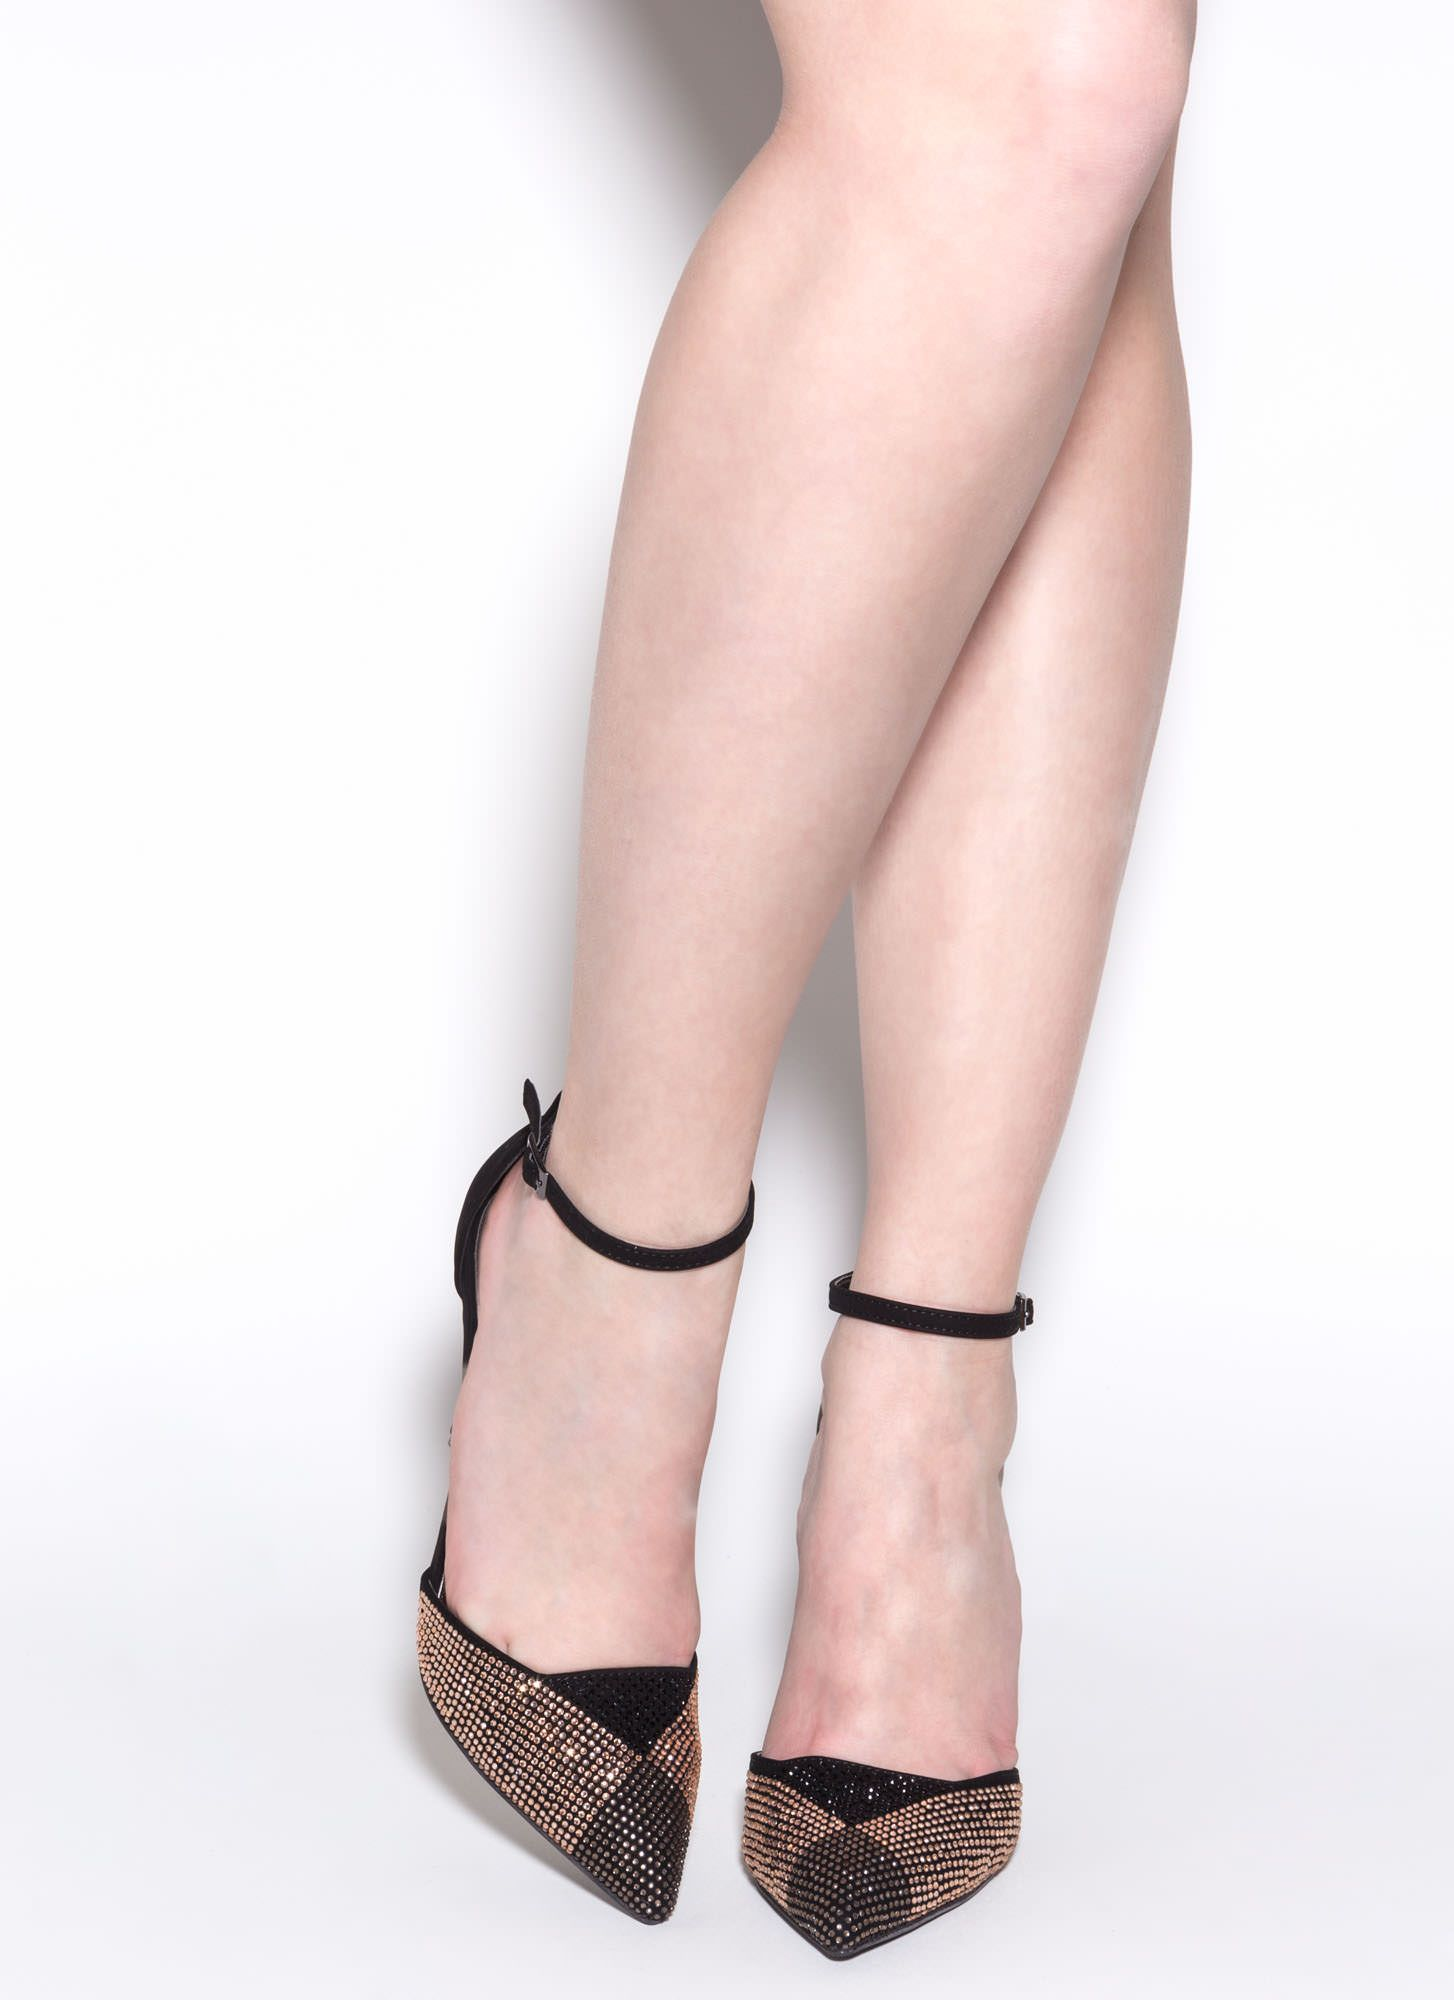 ede57605b4 $19 Point Out The Bling Faux Nubuck Heels GoJane.com   Heels to Die ...